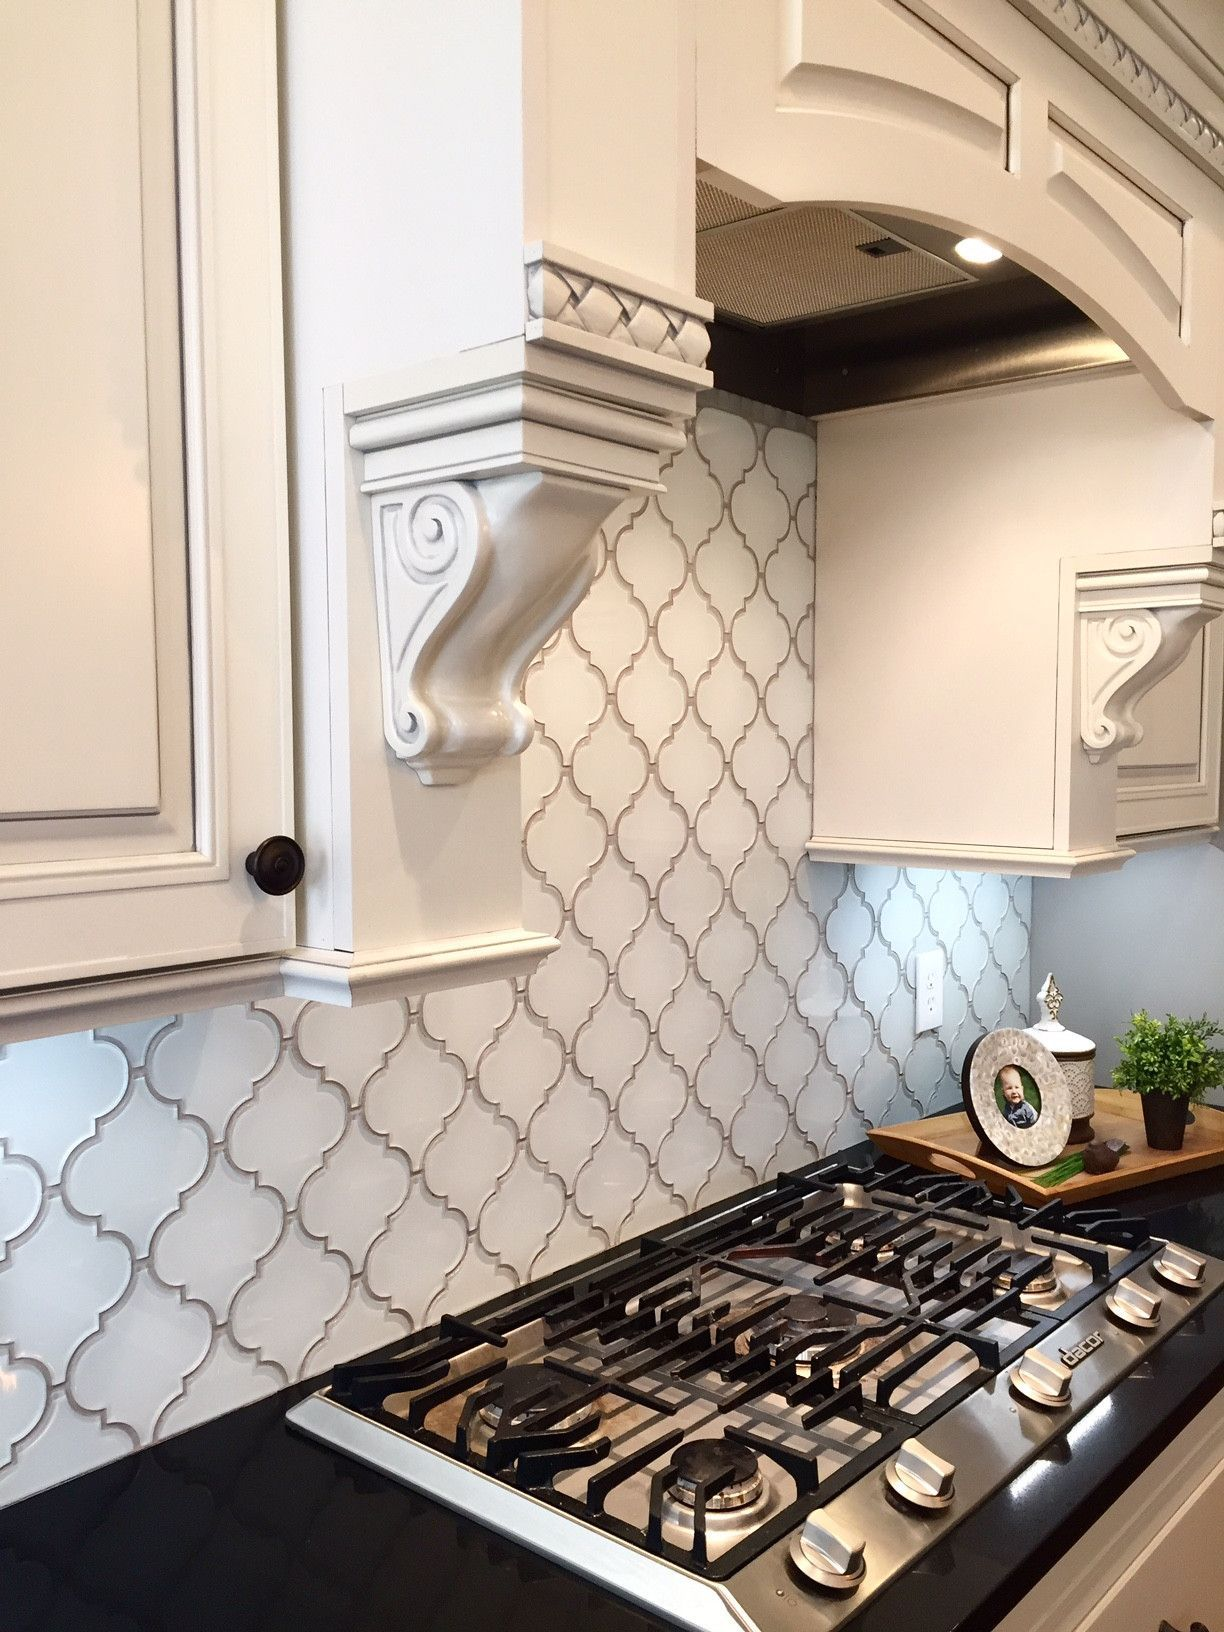 Snow White Arabesque Glass Mosaic Tiles | Kitchen backsplash, Snow ...